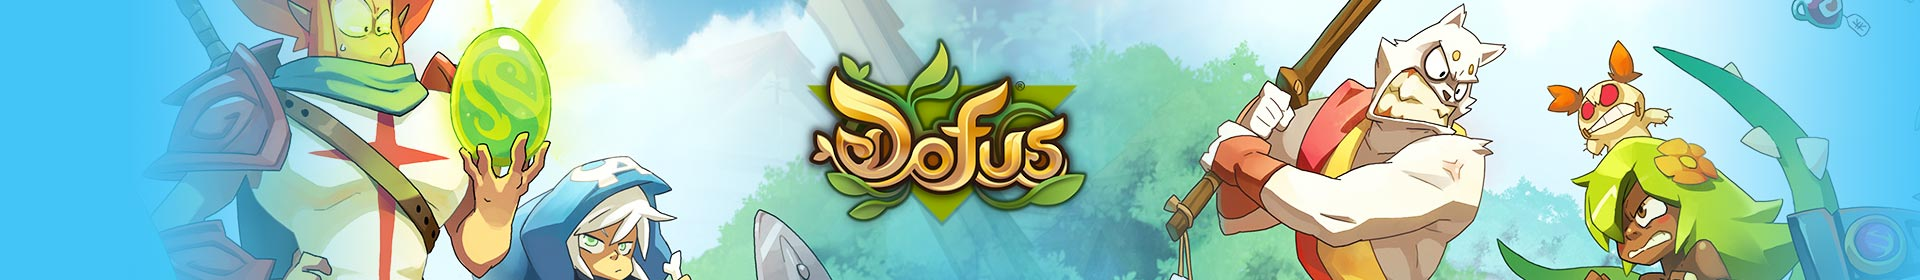 Dofus Touch Goultines